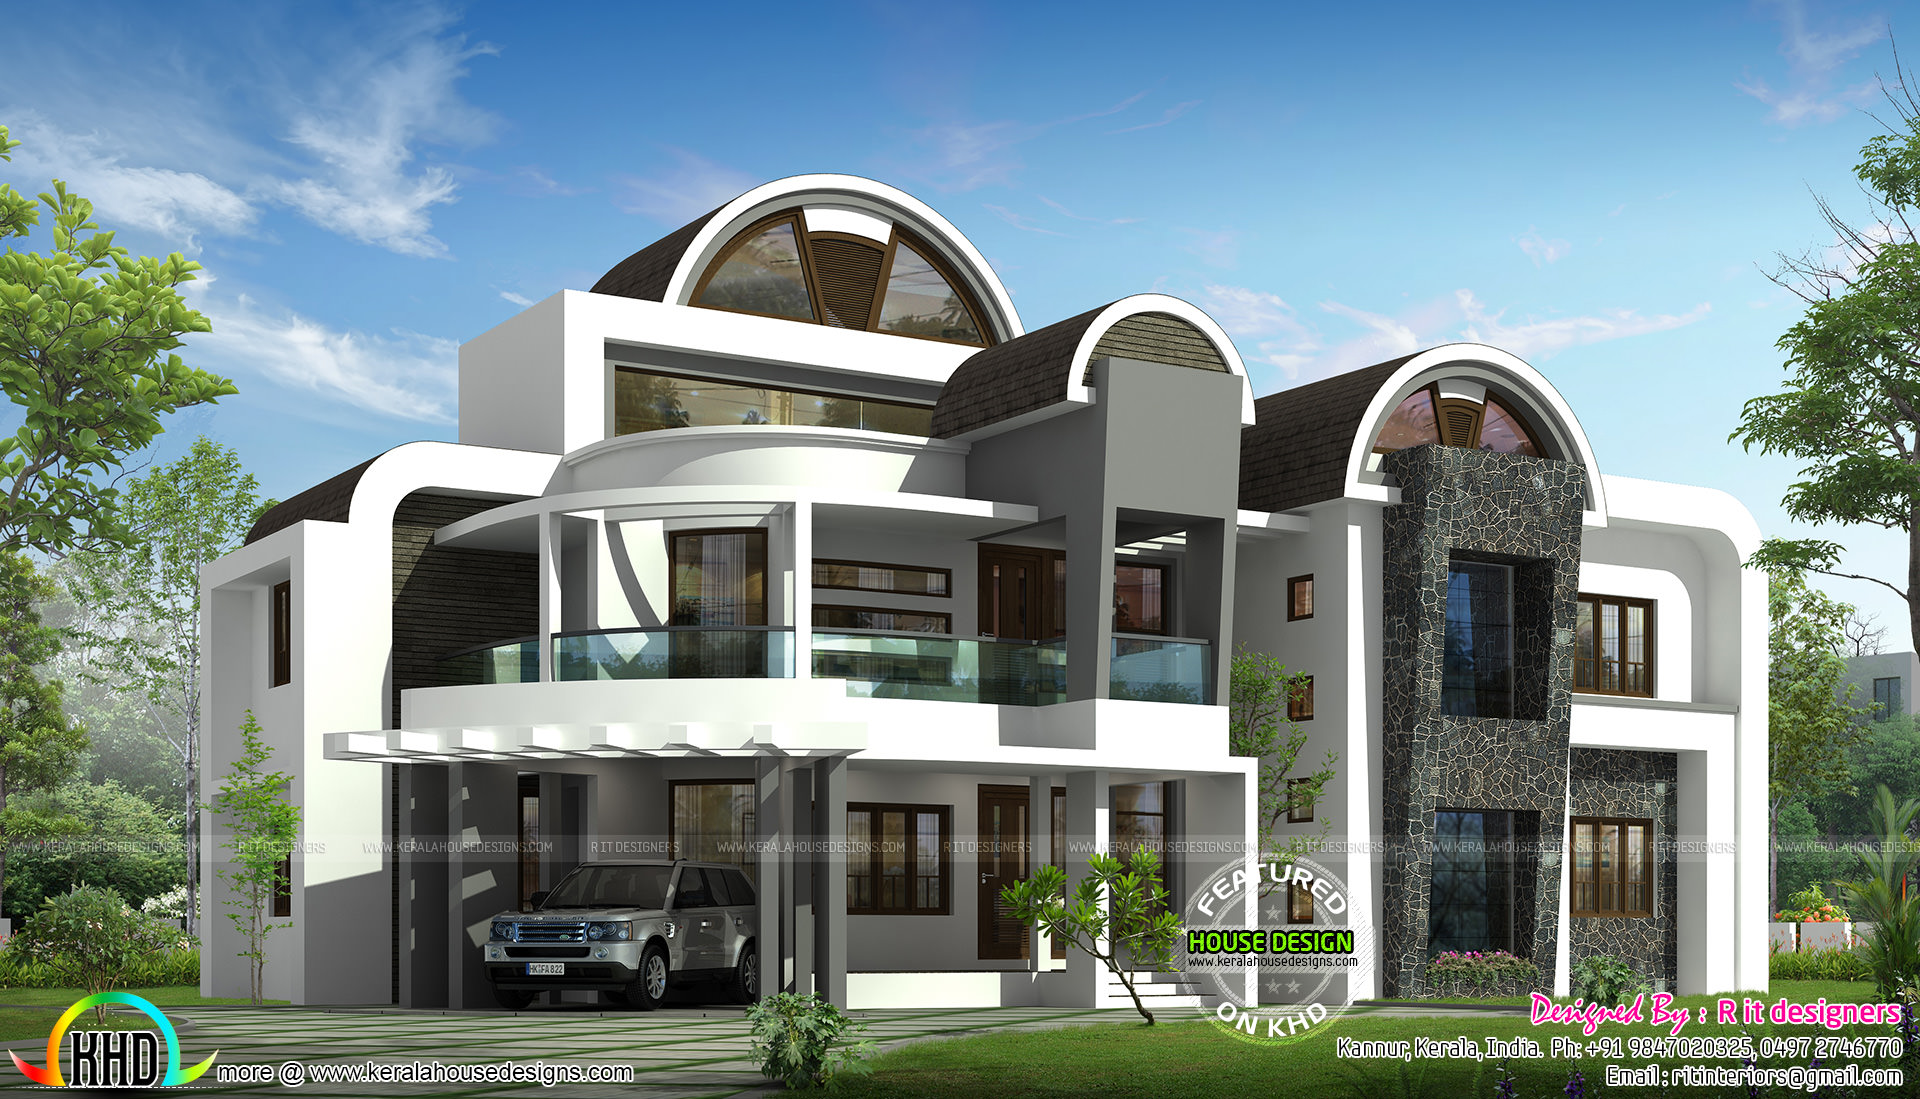 Half round roof unique house design kerala home design and floor plans - Unique house design ...